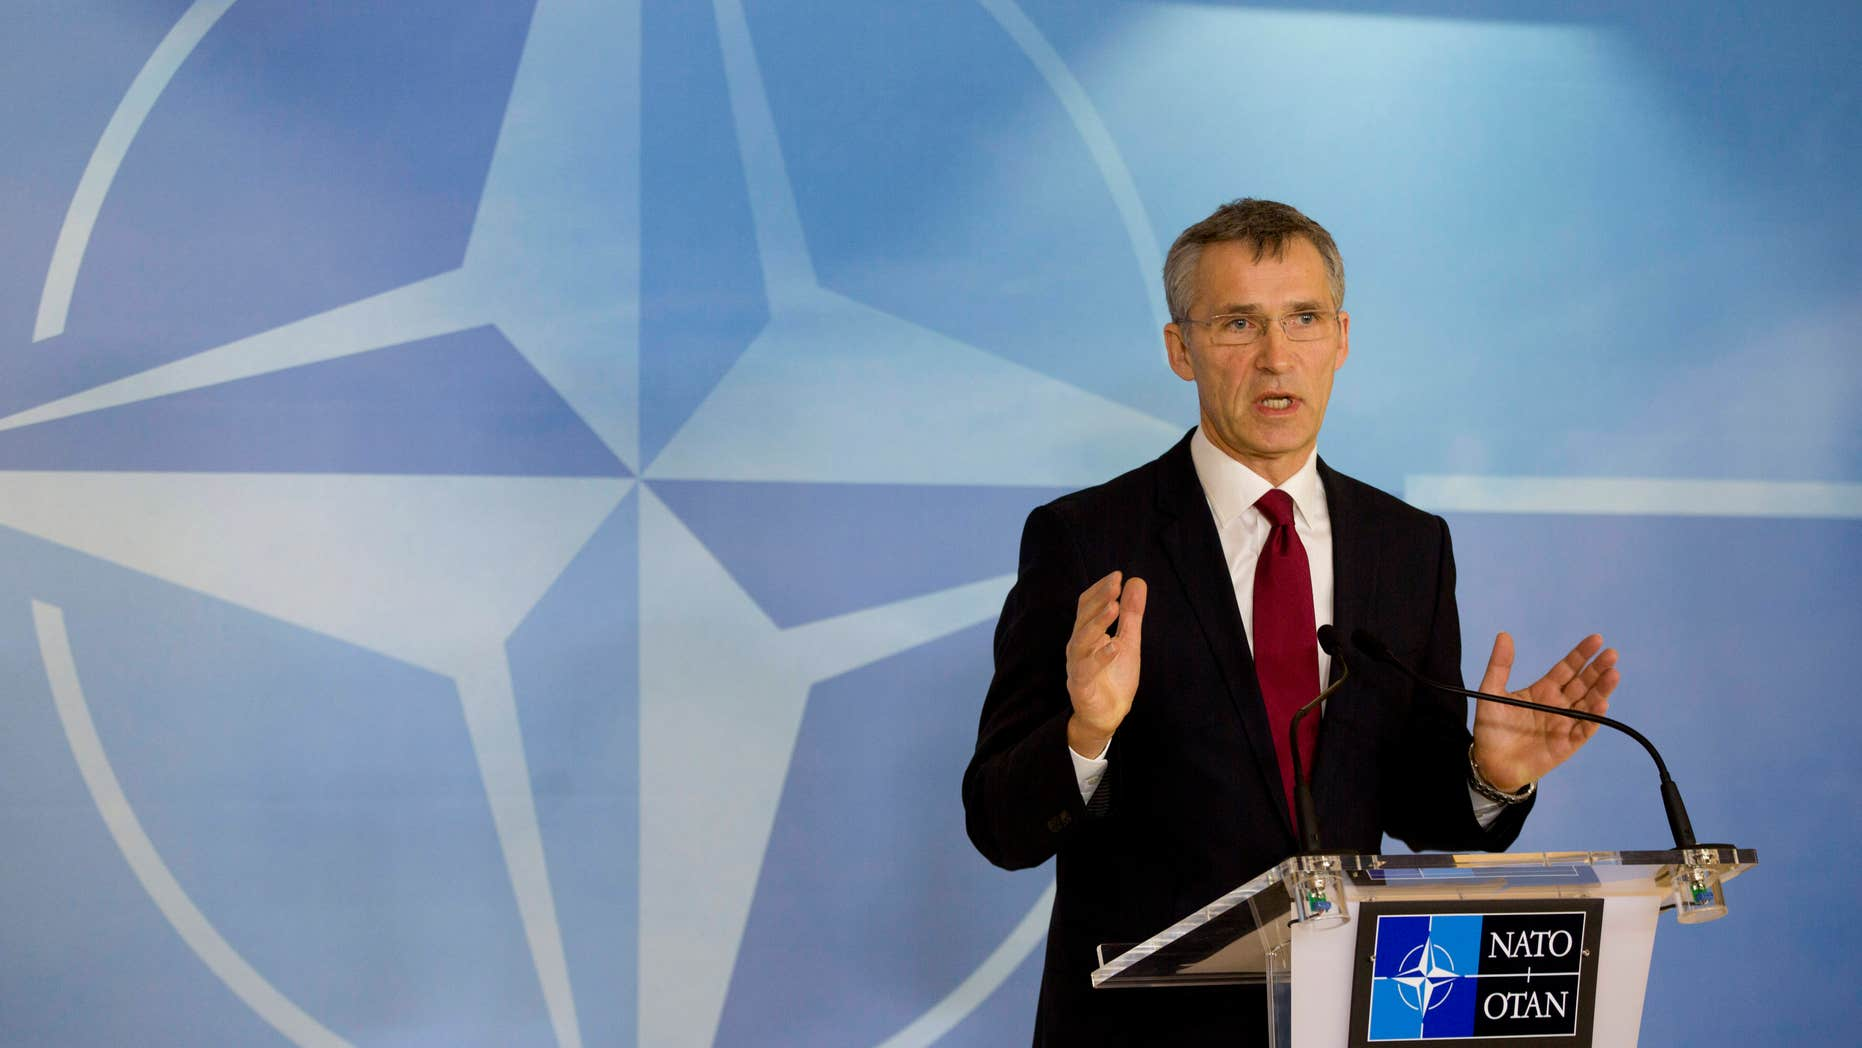 Feb. 5, 2015: NATO Secretary General Jens Stoltenberg speaks during a media conference at NATO headquarters in Brussels.